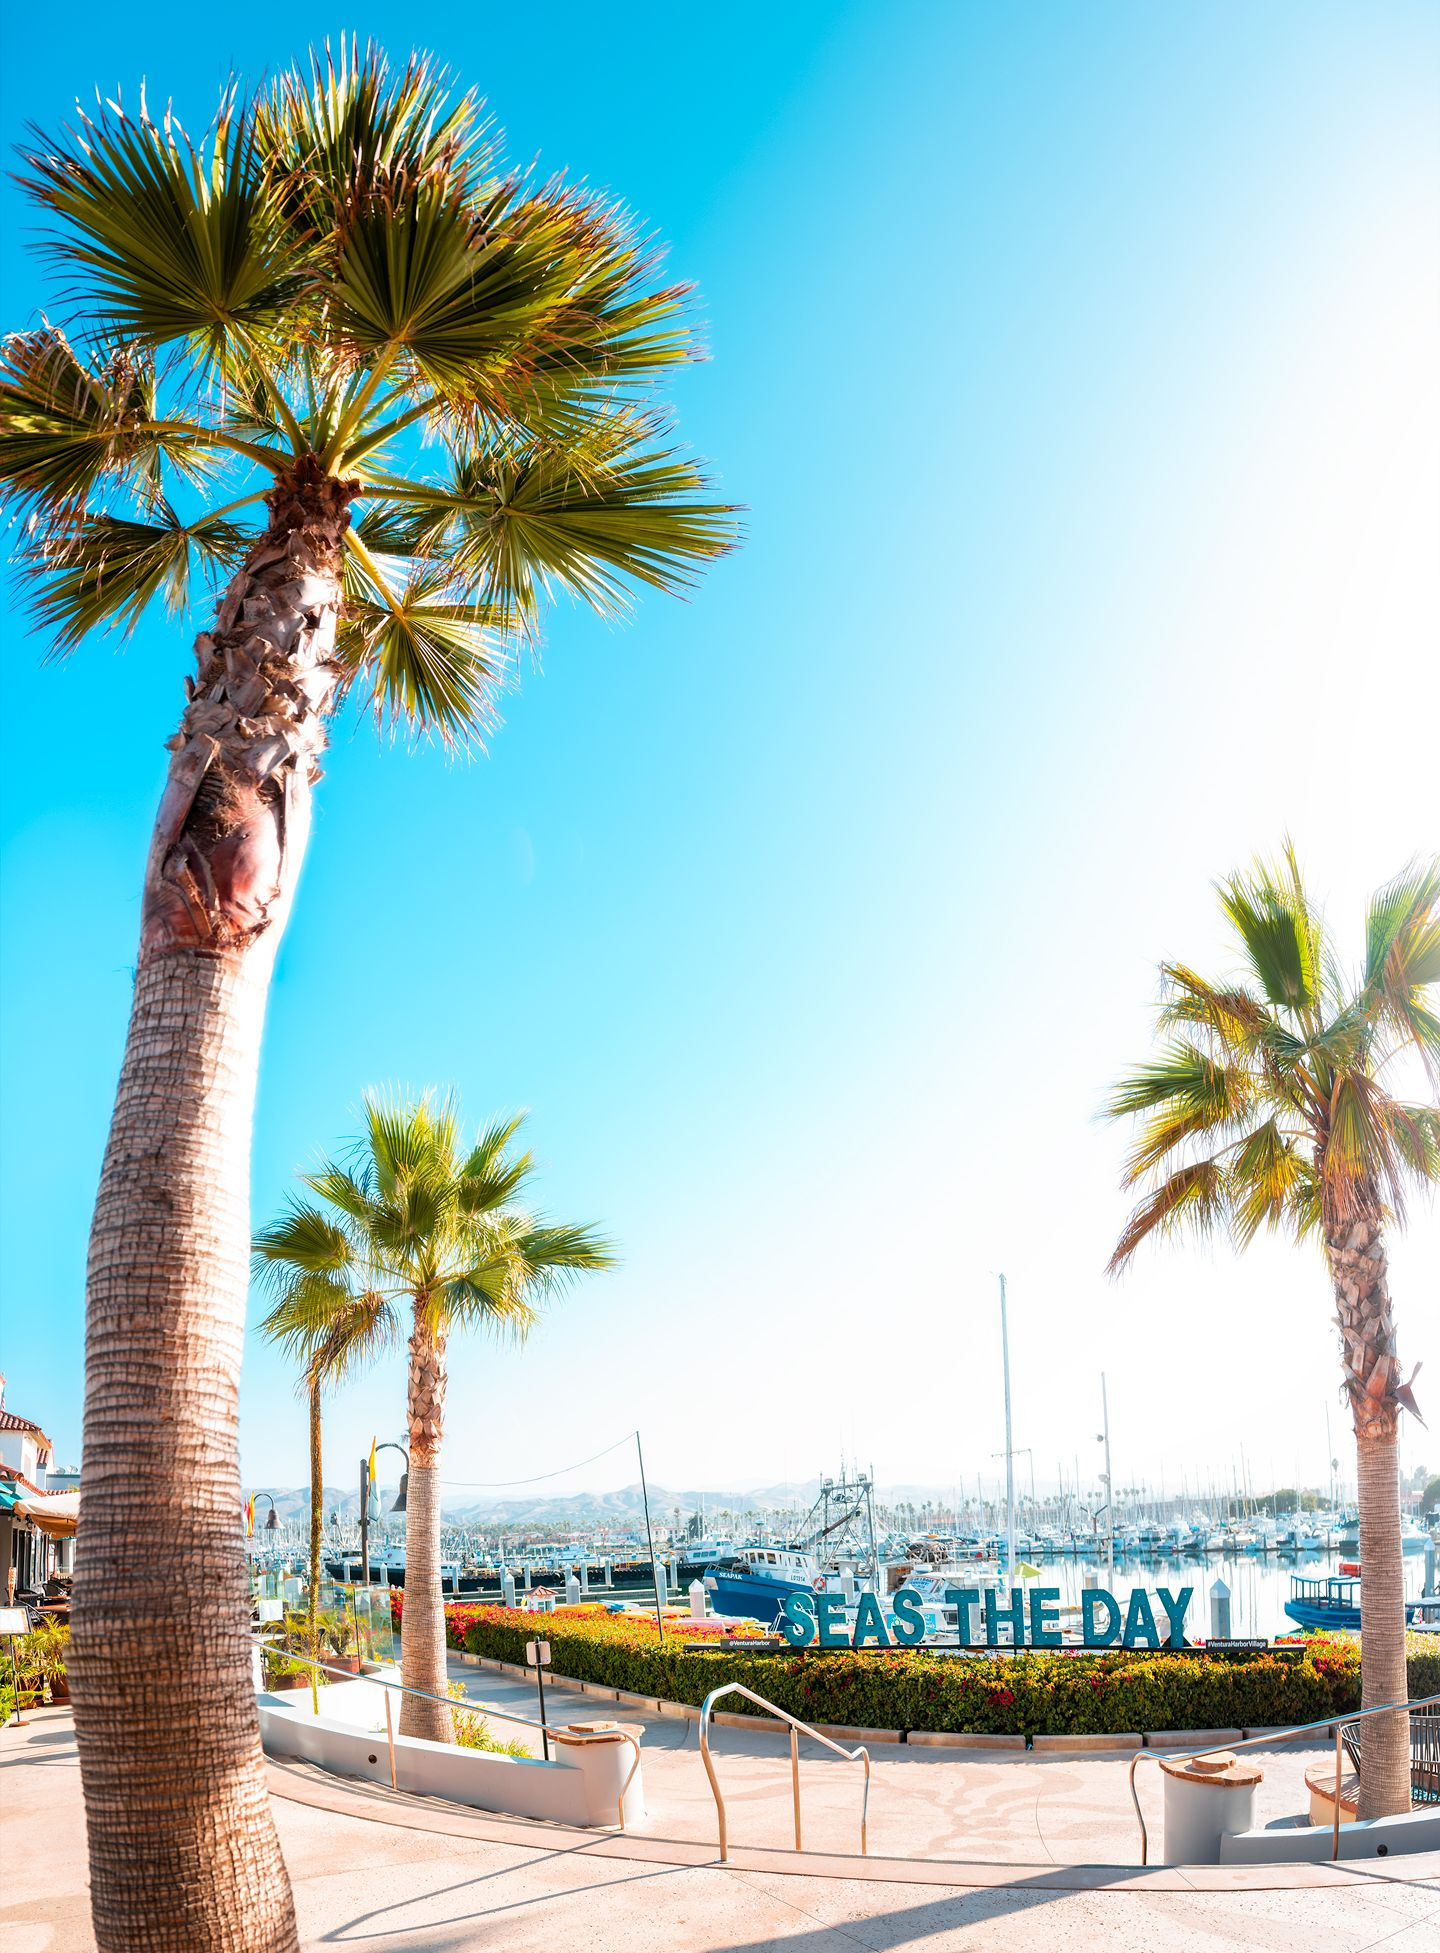 Ventura Harbor Village is open for summer! SEAS the day with us, seaside! Ventura Harbor Village has waterfront dining, seaside shopping, pampering, and entertainment. See below for local favorites, recommendations, and the ultimate guide to summer fun in Ventura Harbor.